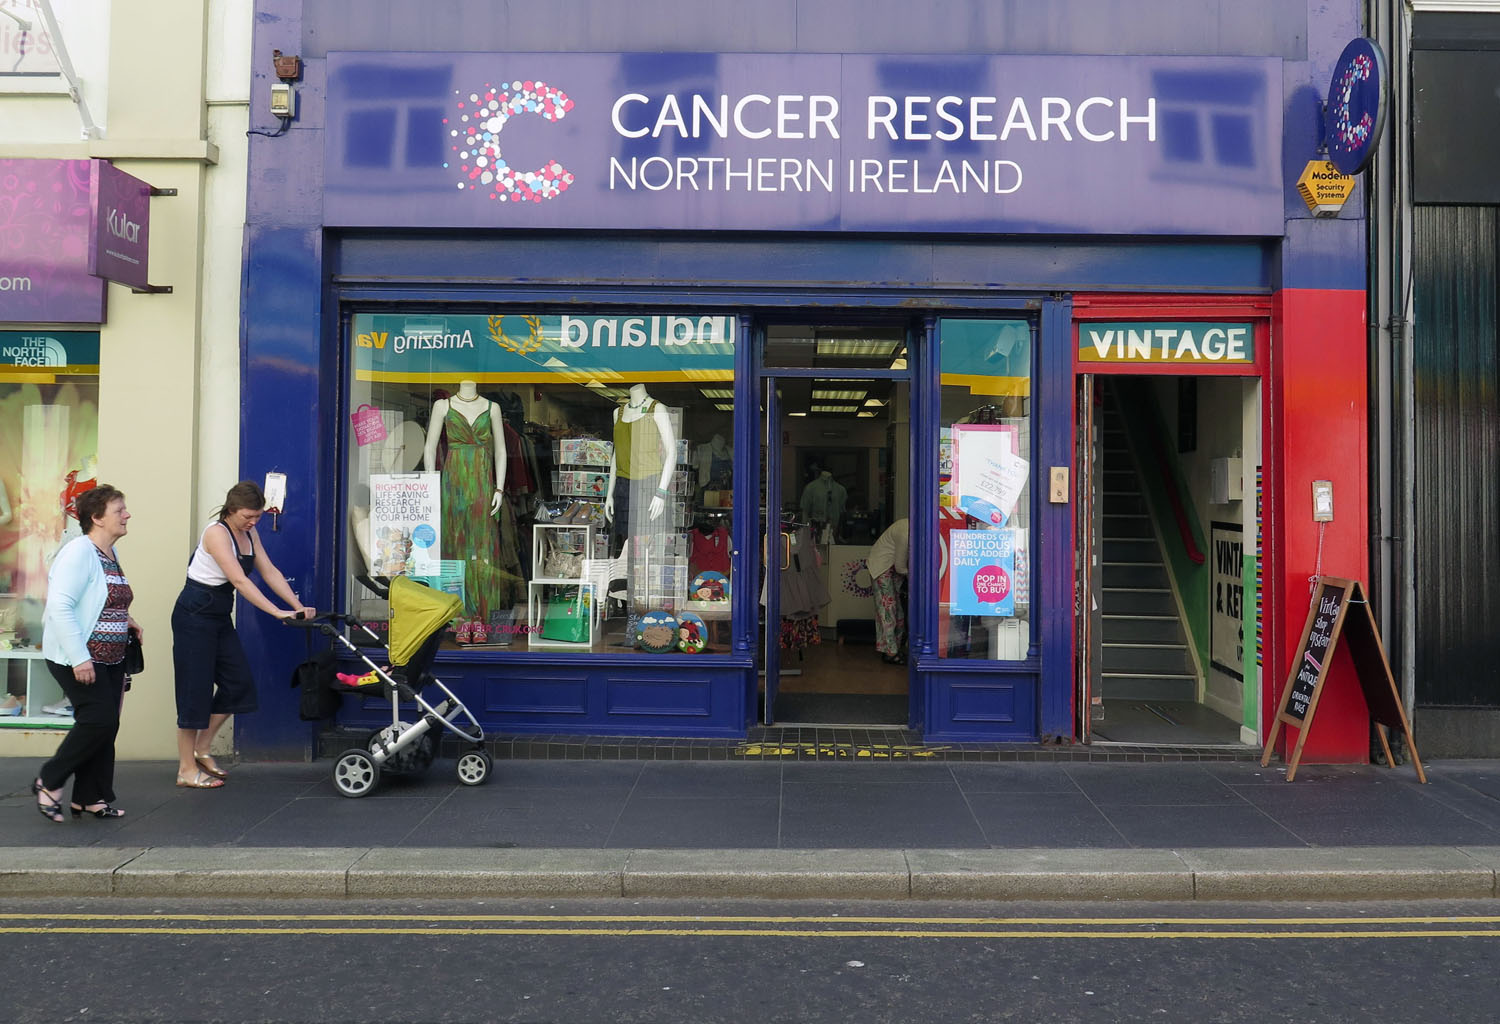 Northern-Ireland-Derry-Londonderry-Street-Scenes-Charity-Shop